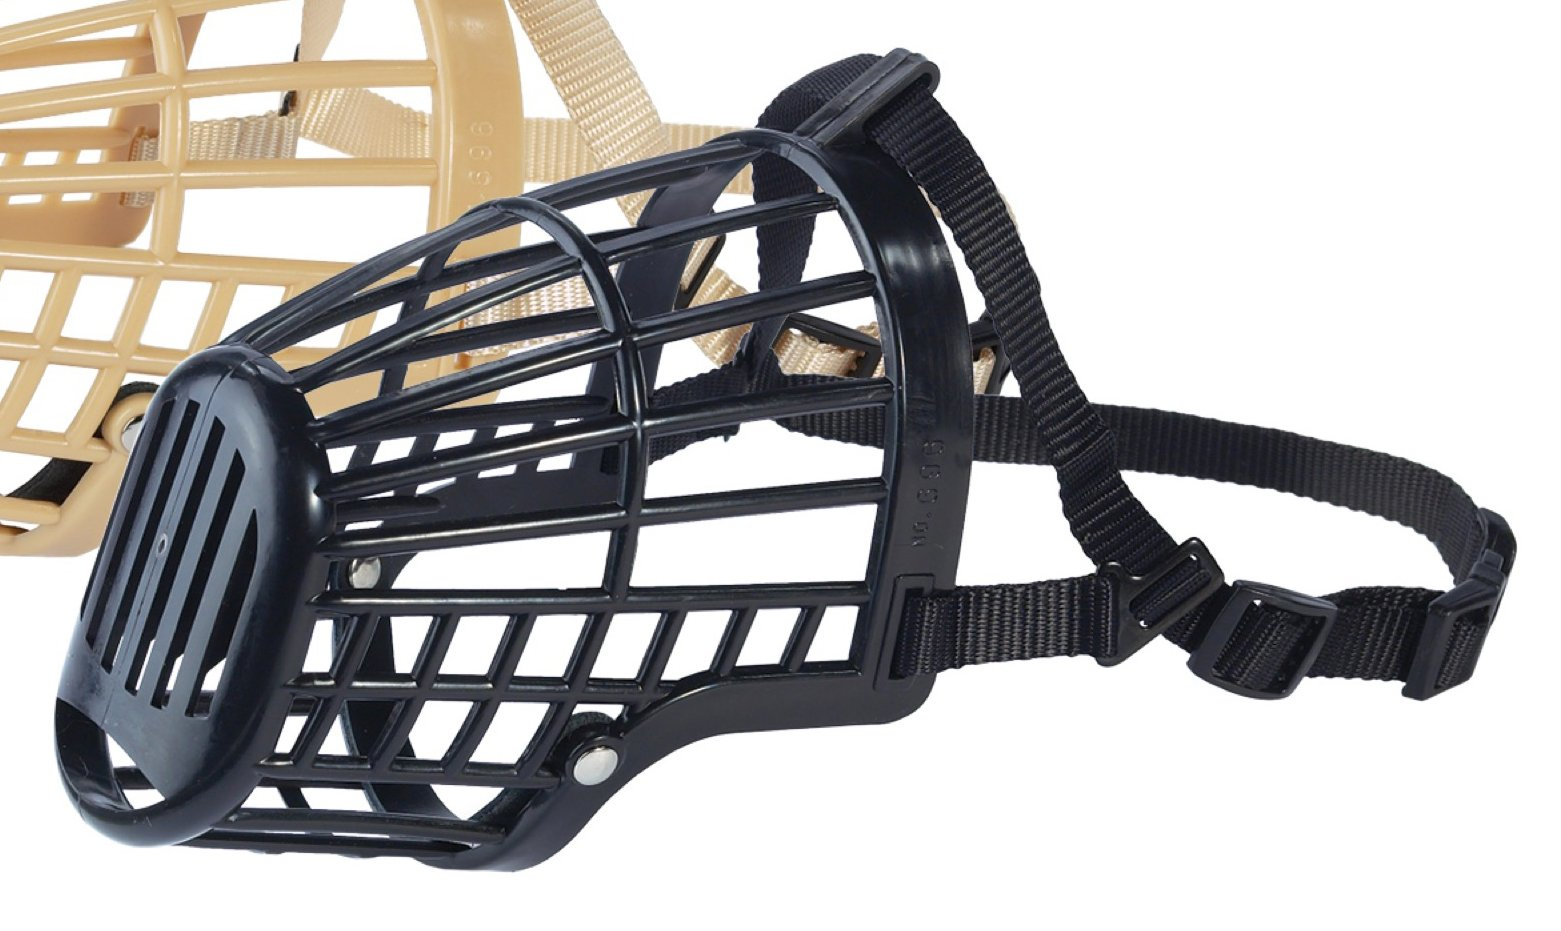 Guardian Gear Flexible Plastic Dog Basket Muzzle - X-Large, Black